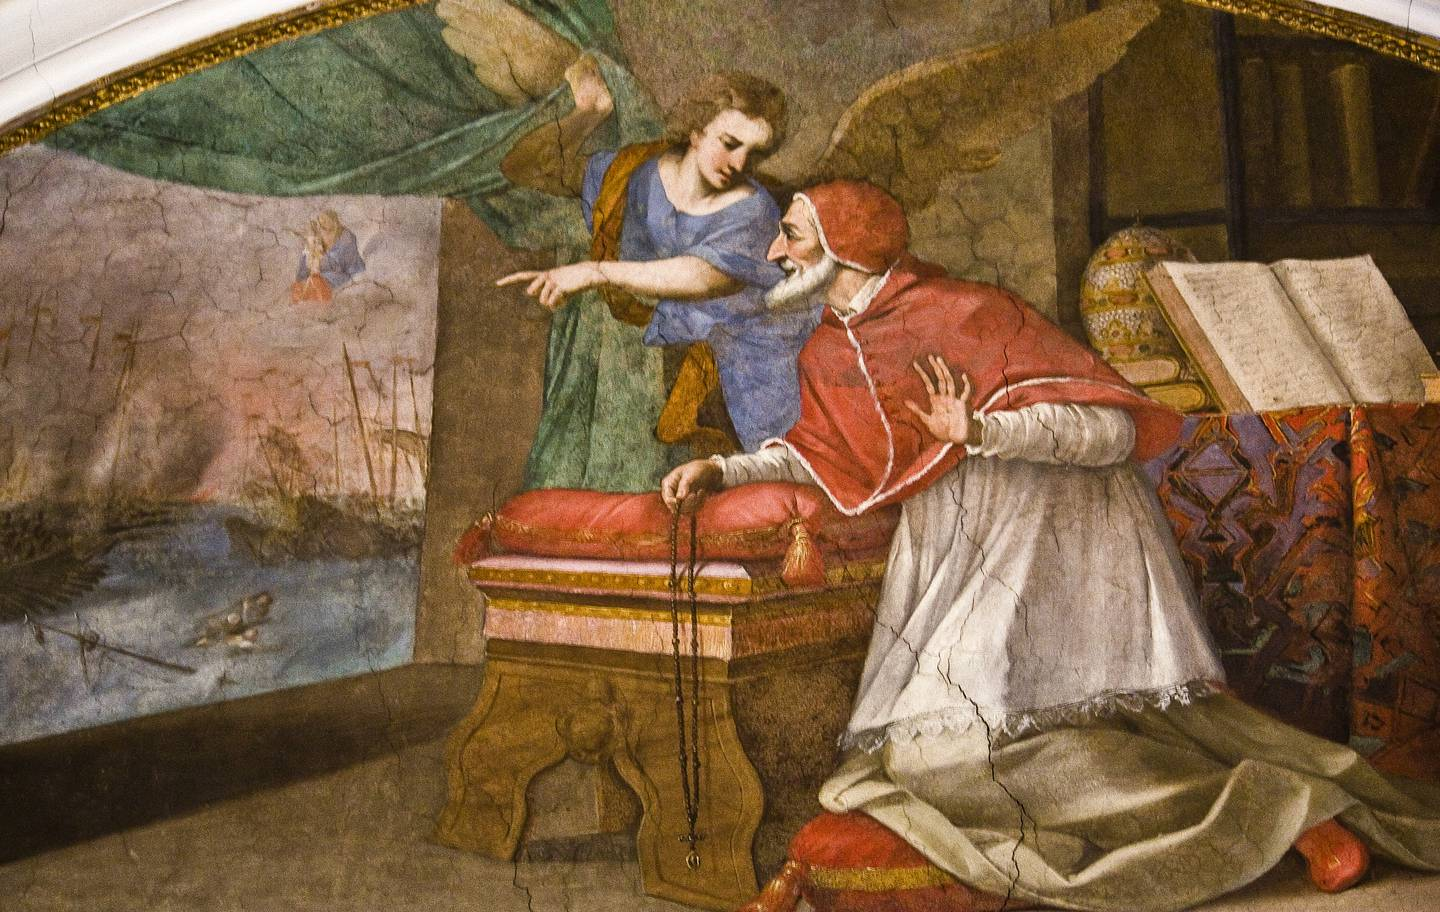 This fresco of the Dominican Pope St Pius V praying the Rosary during the Battle of Lepanto